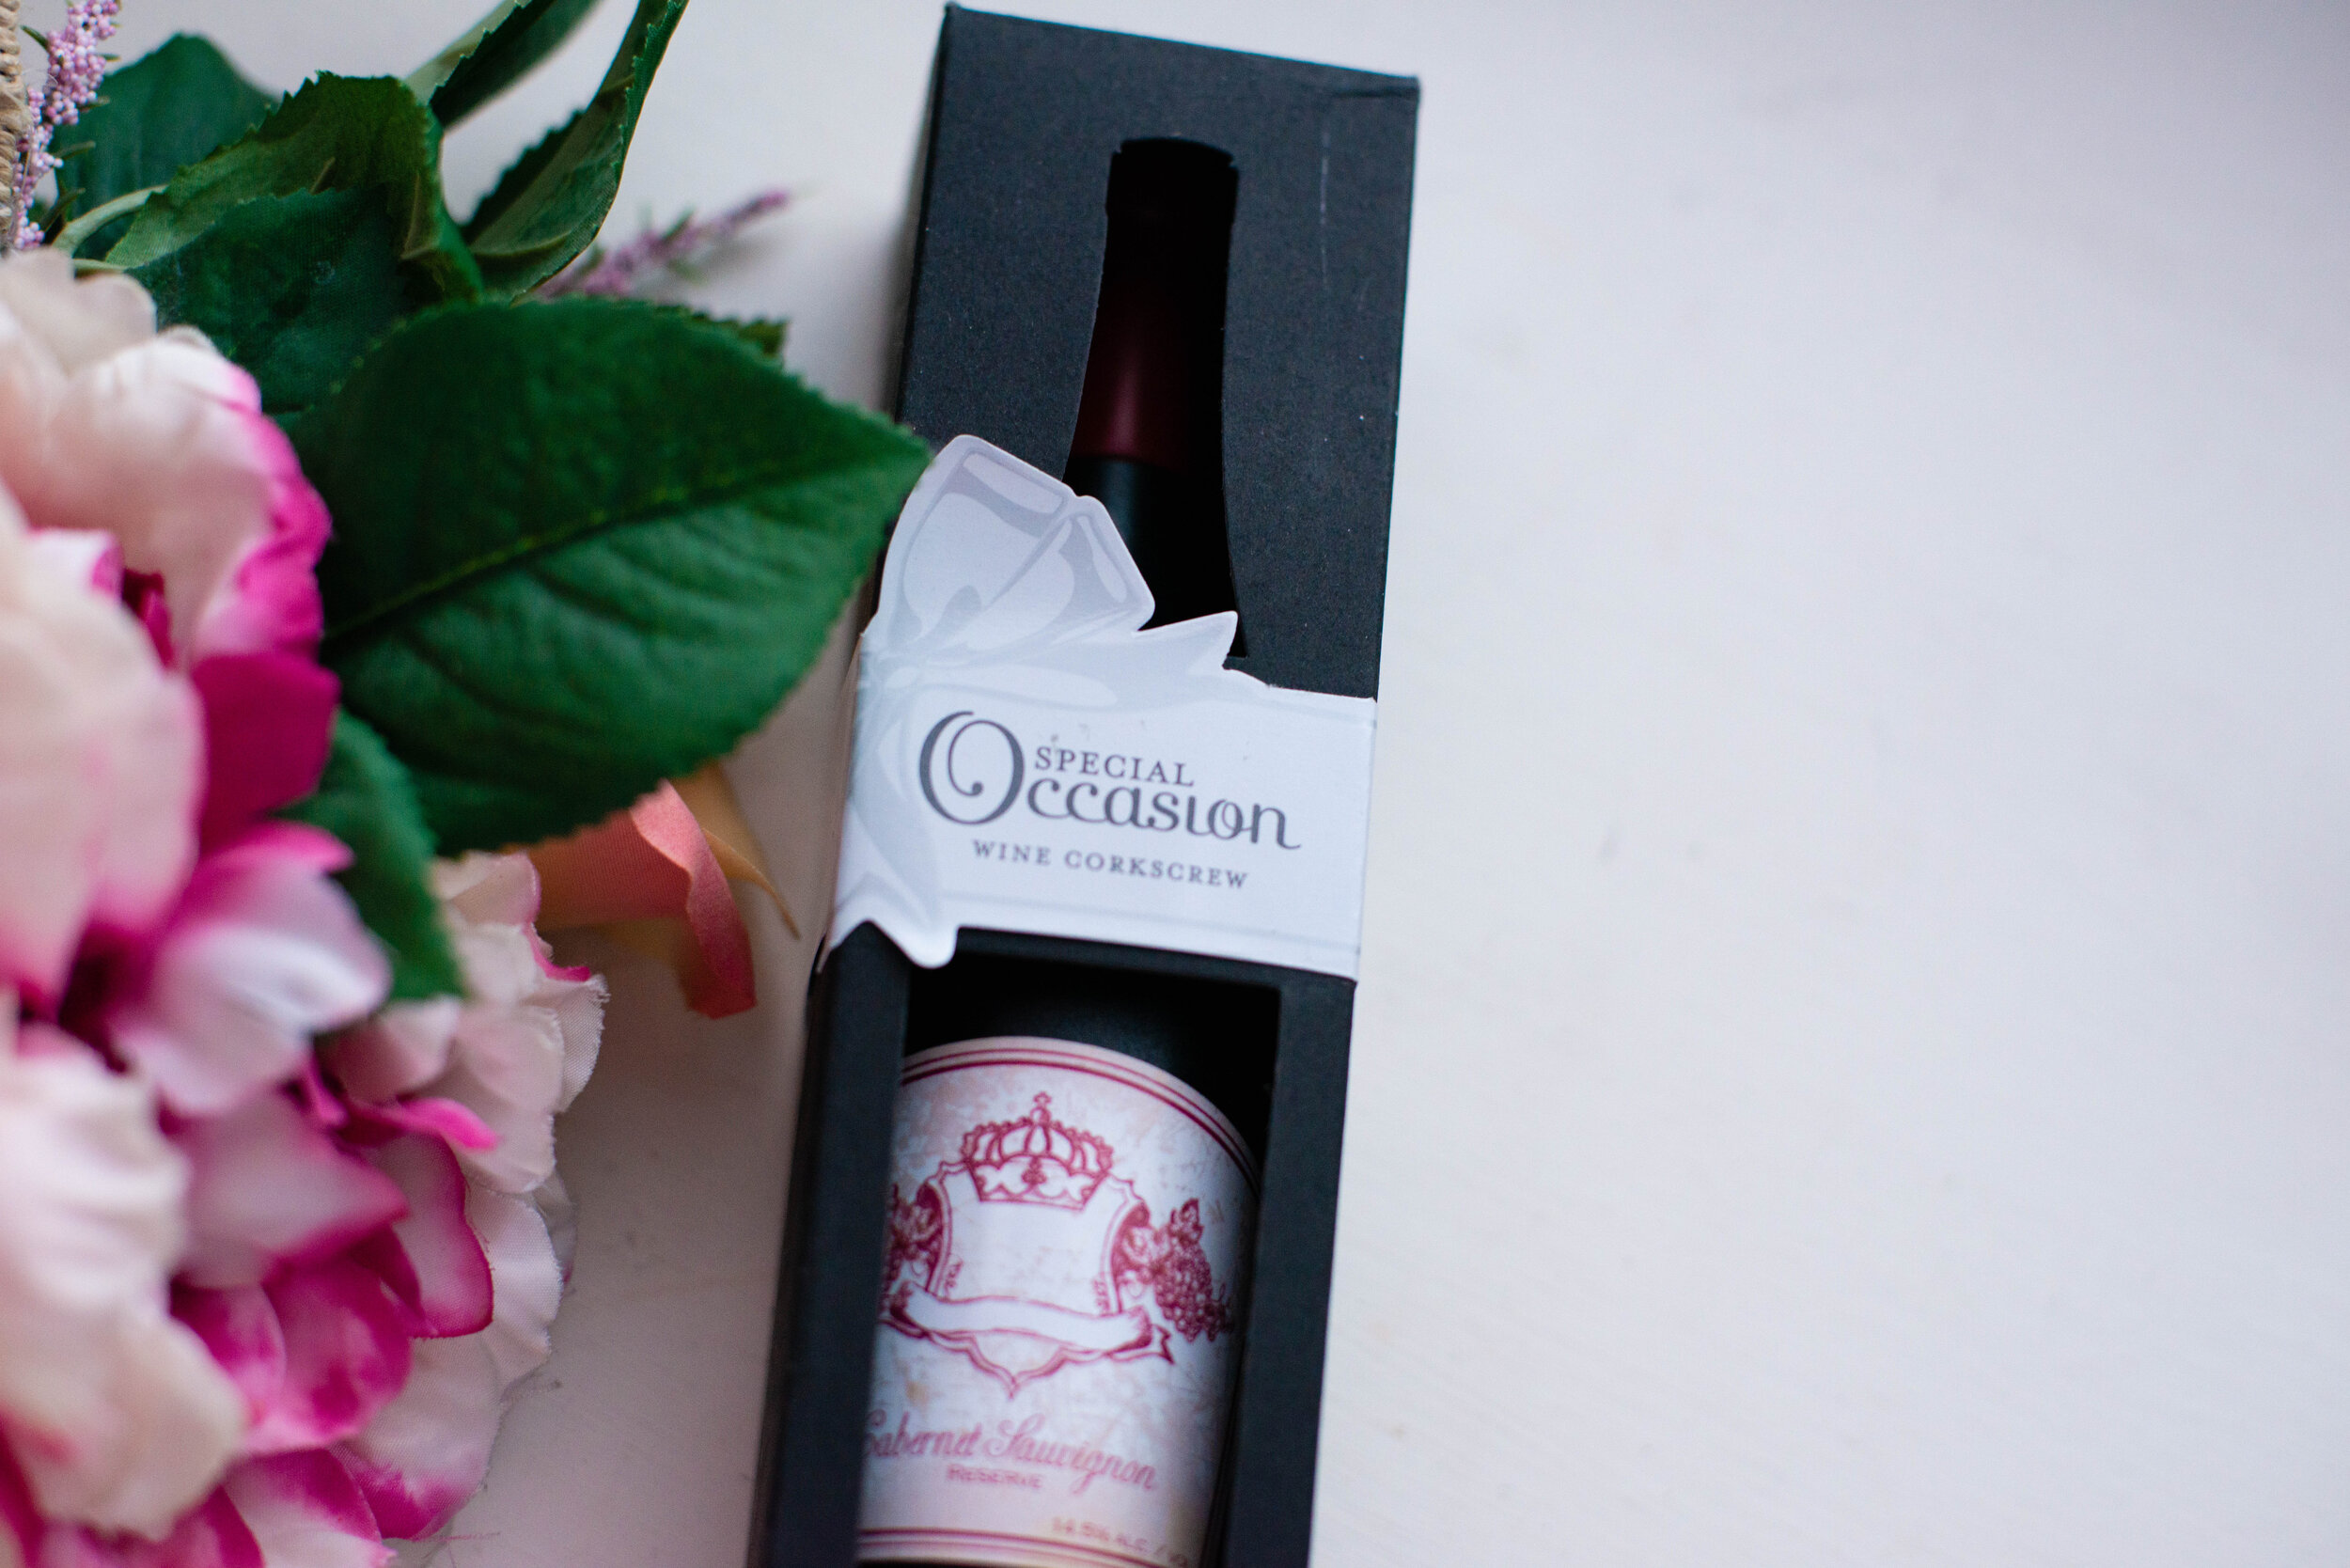 Wine Not Corkscrew shown in its box